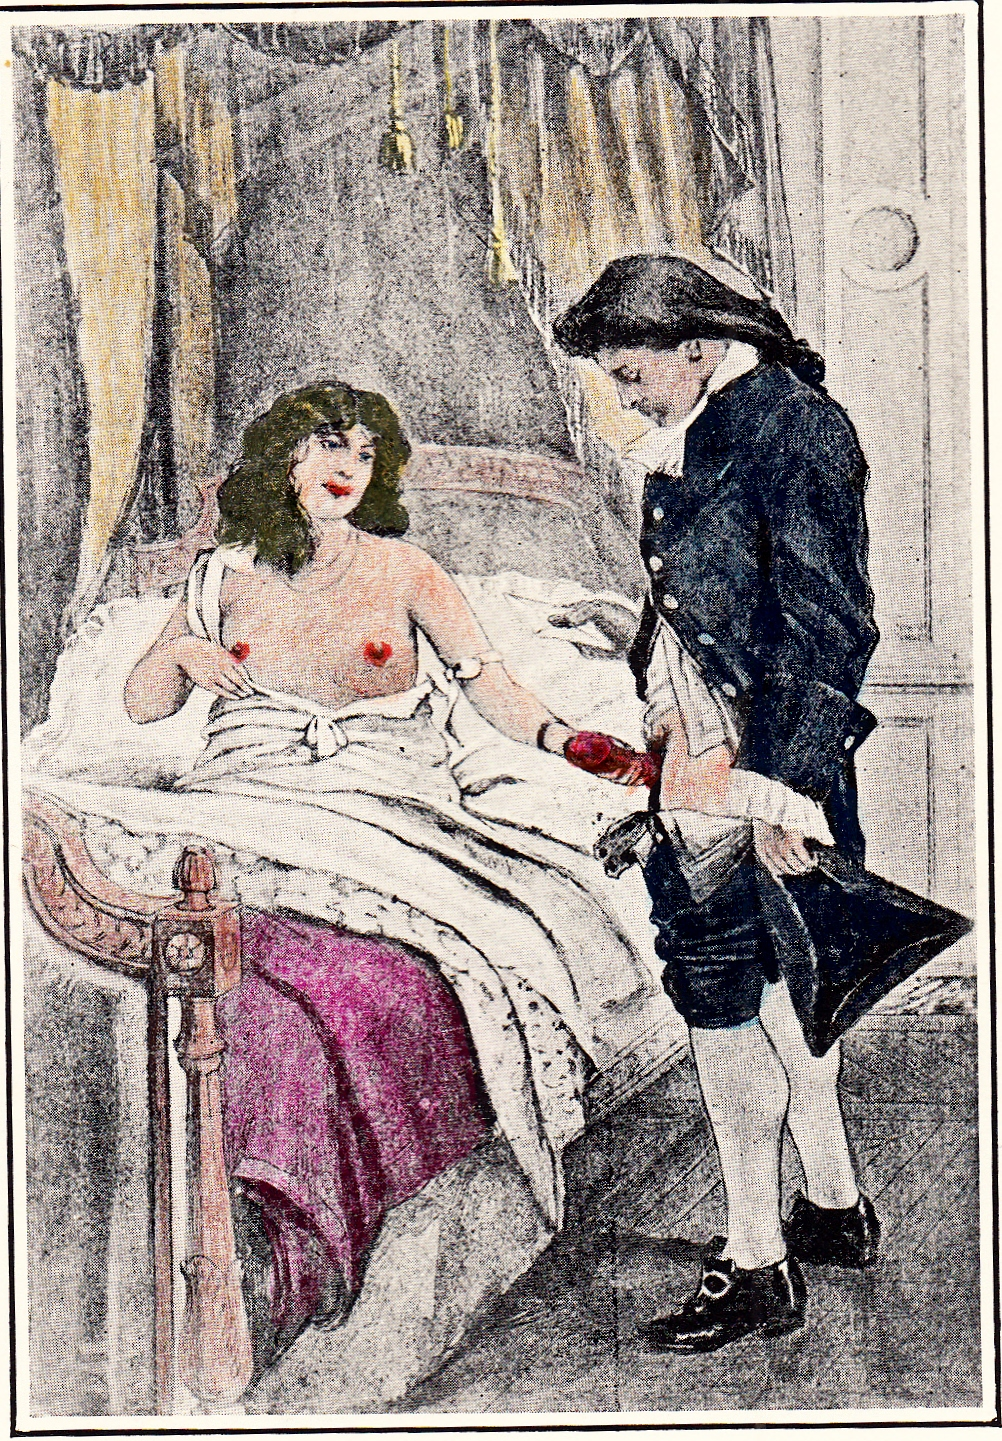 memoirs-of-fanny-hill-by-john-cleland-a-genuine-reprint-of-the-rare-edition-of-1749-paris-and-benares-the-kamashastra-society-1907-illustration-5